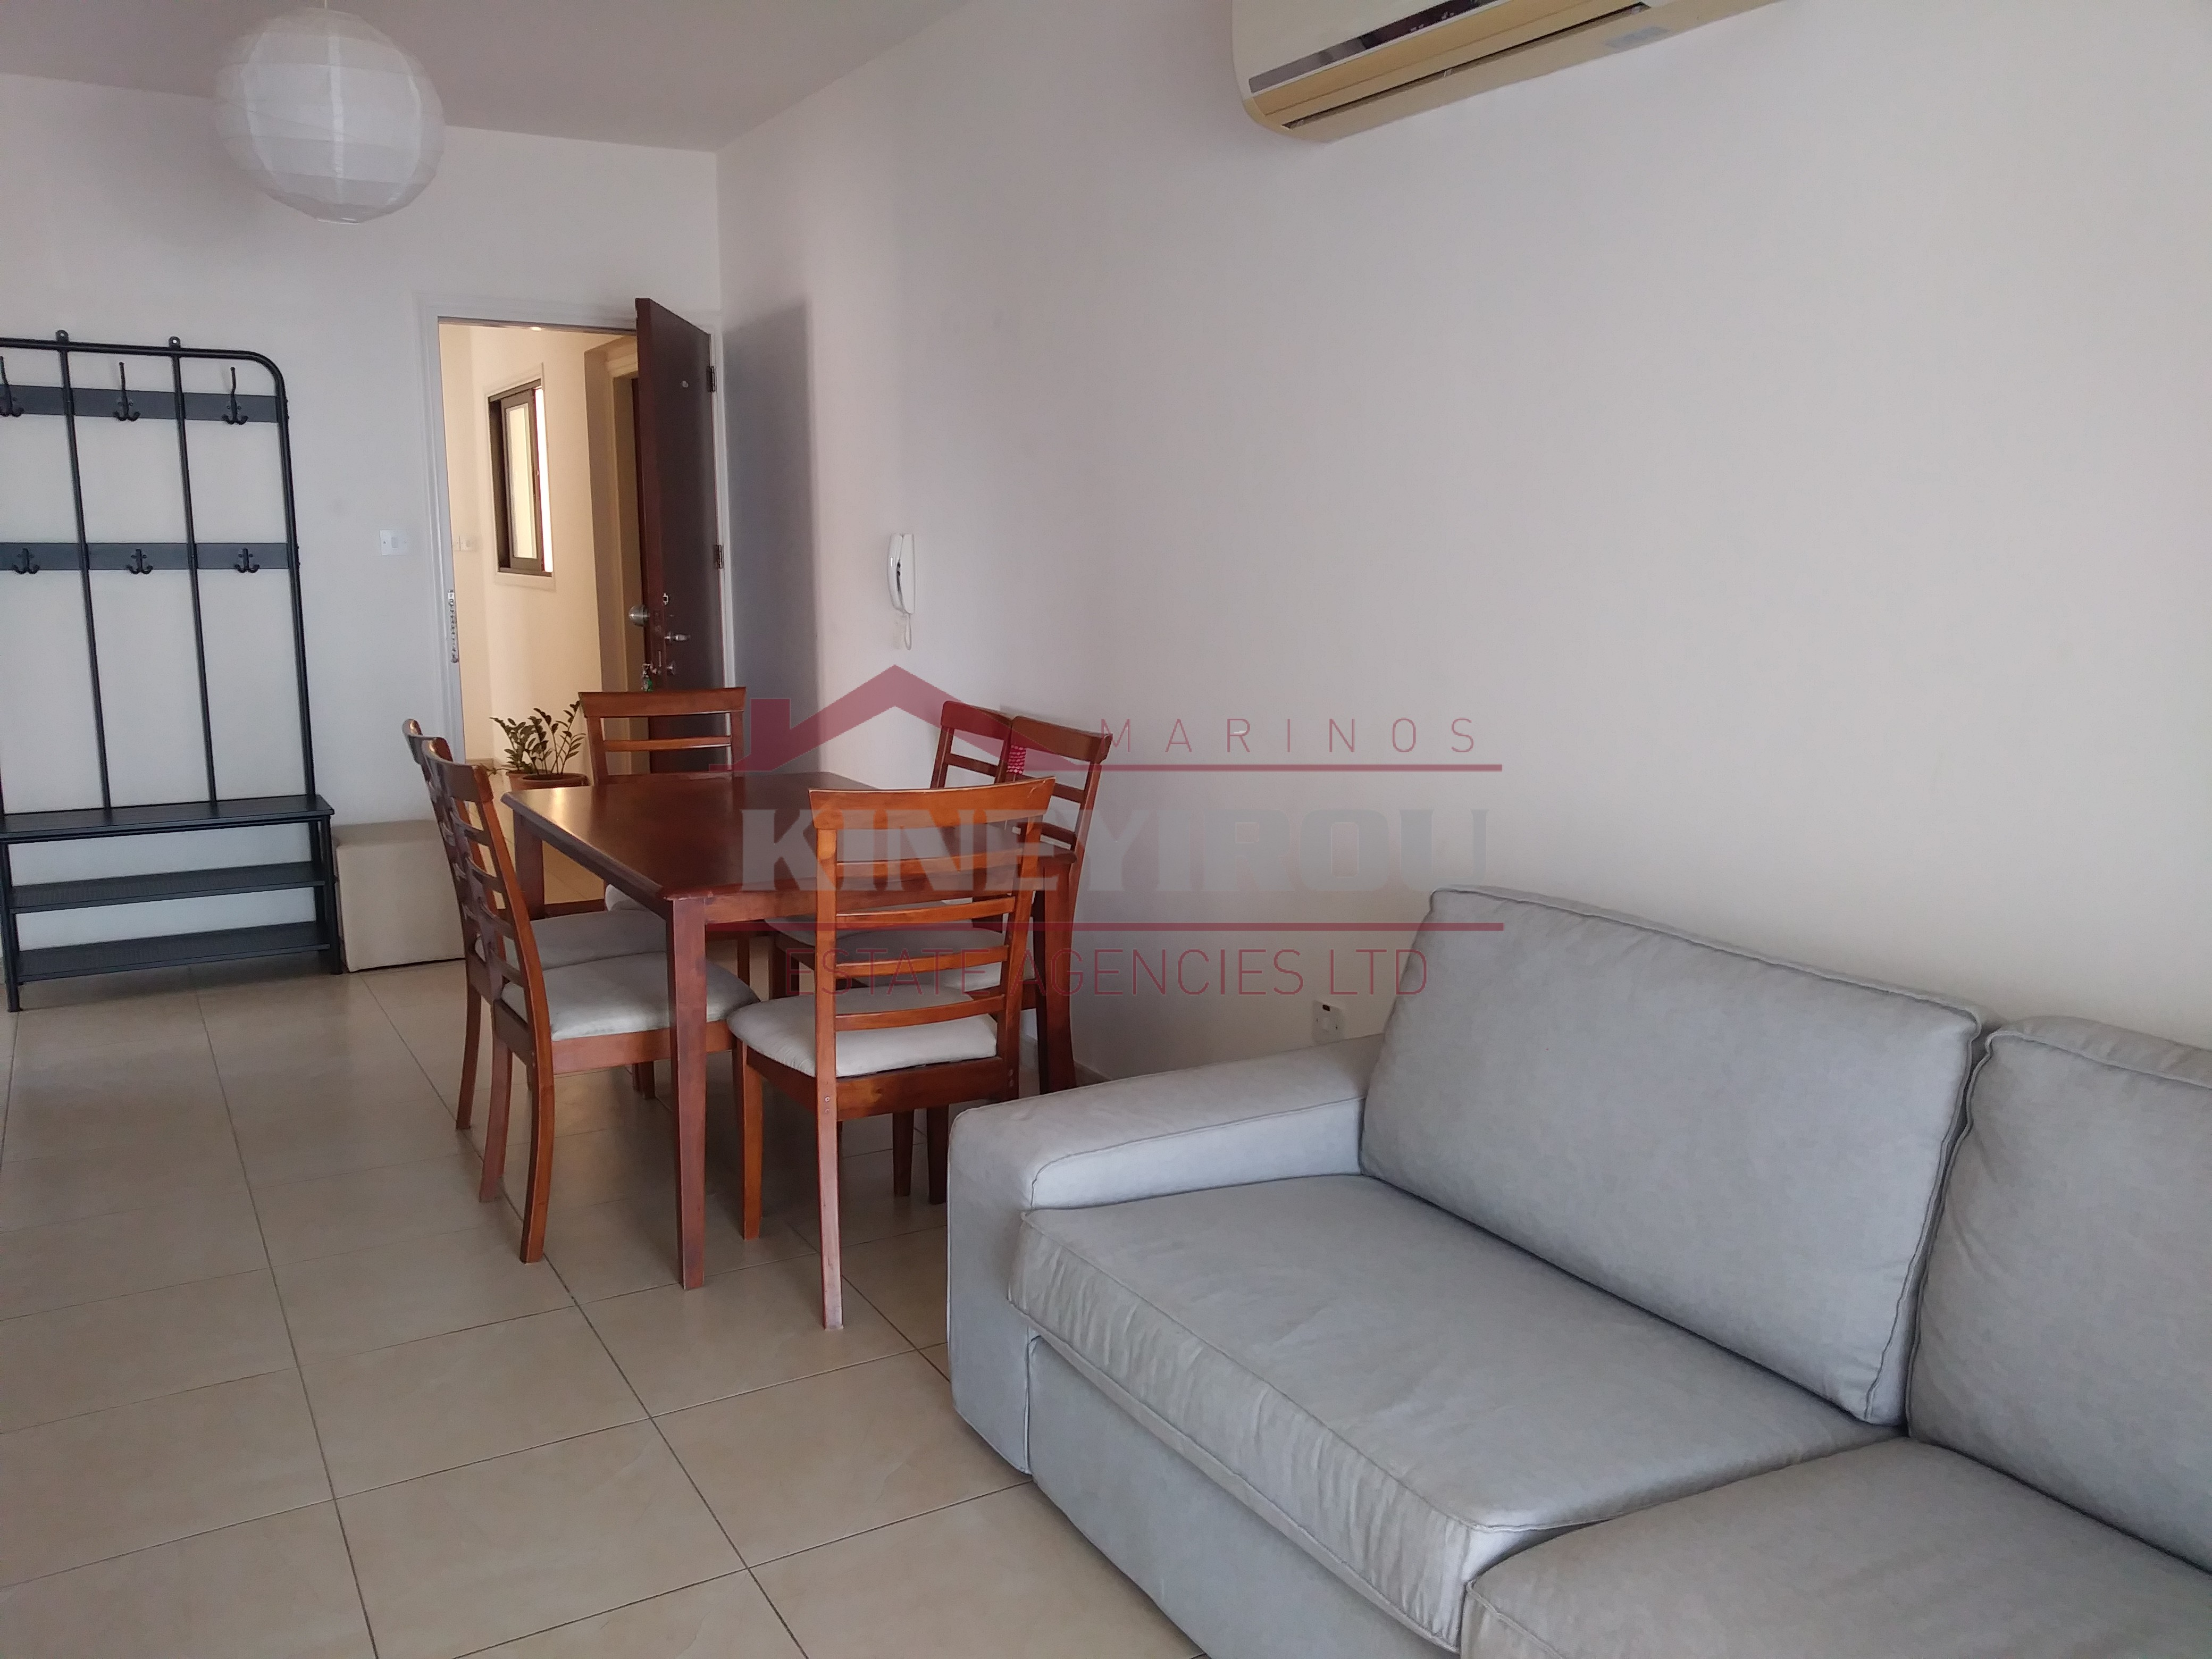 Property in Larnaca , Apartment in center